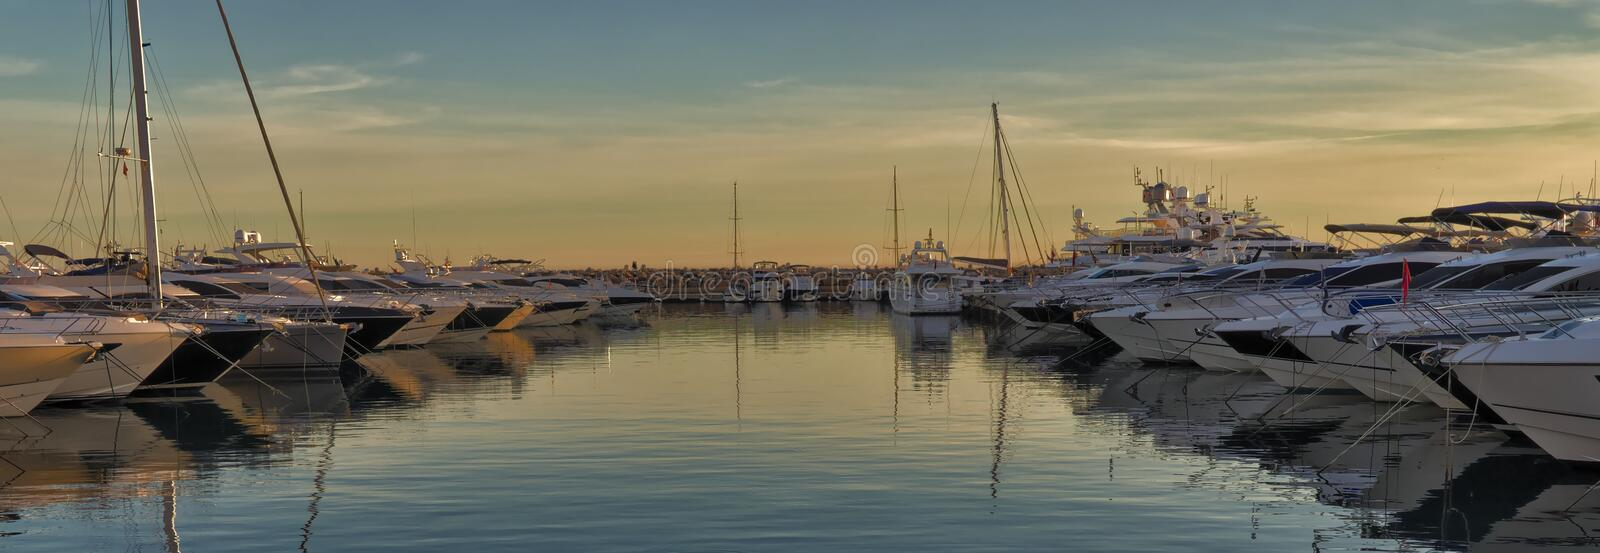 Boats in mediterranean port at sunset, reflections on water and beautiful sky, portal portals, mallorca, spain. Boats in mediterranean port at sunset royalty free stock photos